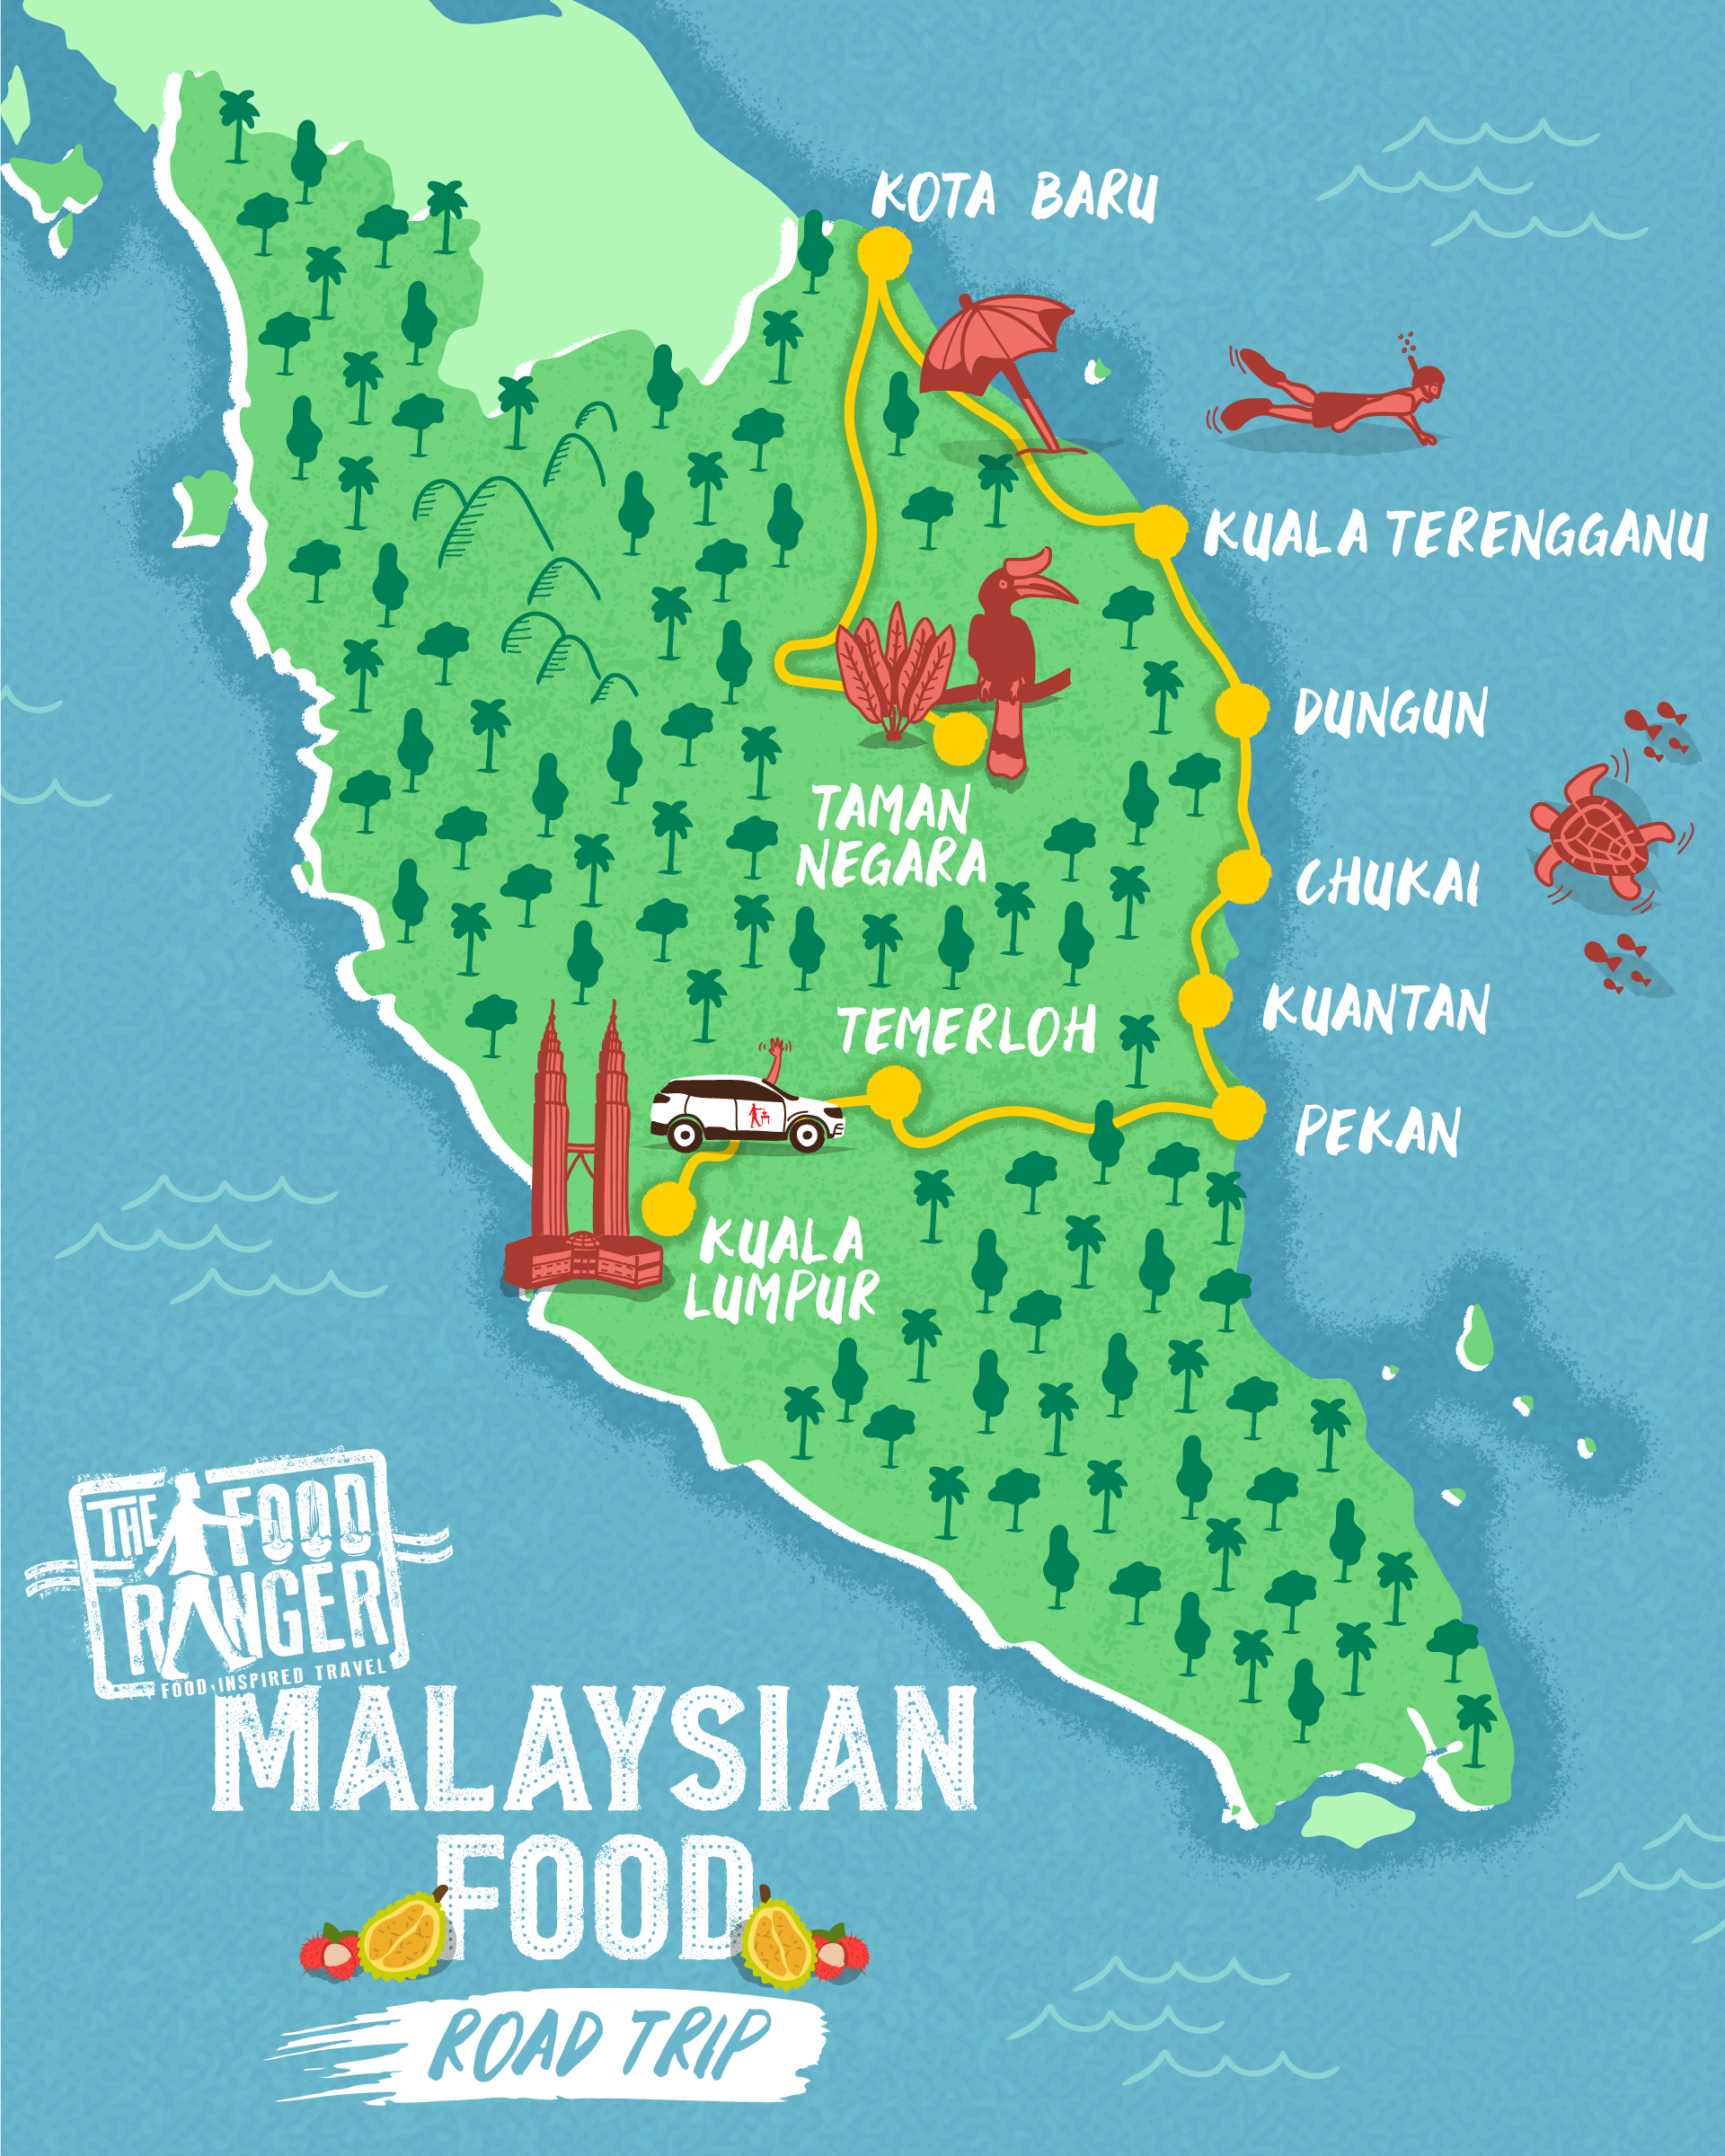 Malays illustrated itinerary map